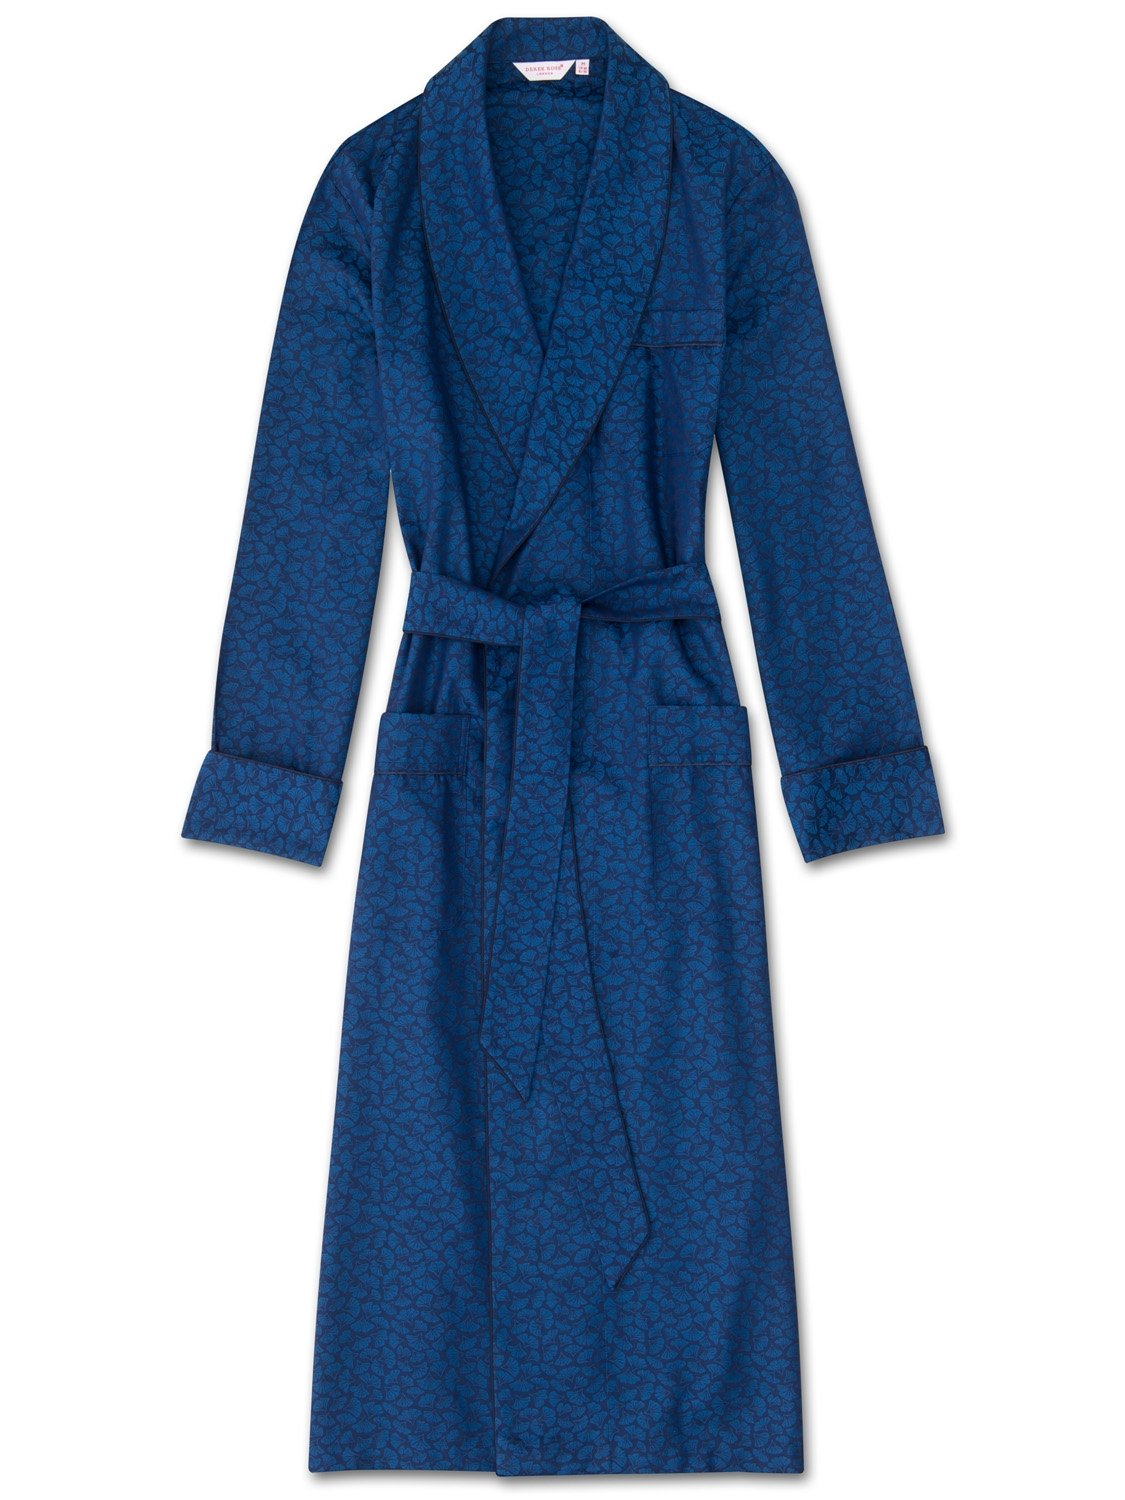 Men's Piped Dressing Gown Paris 14 Cotton Jacquard Navy